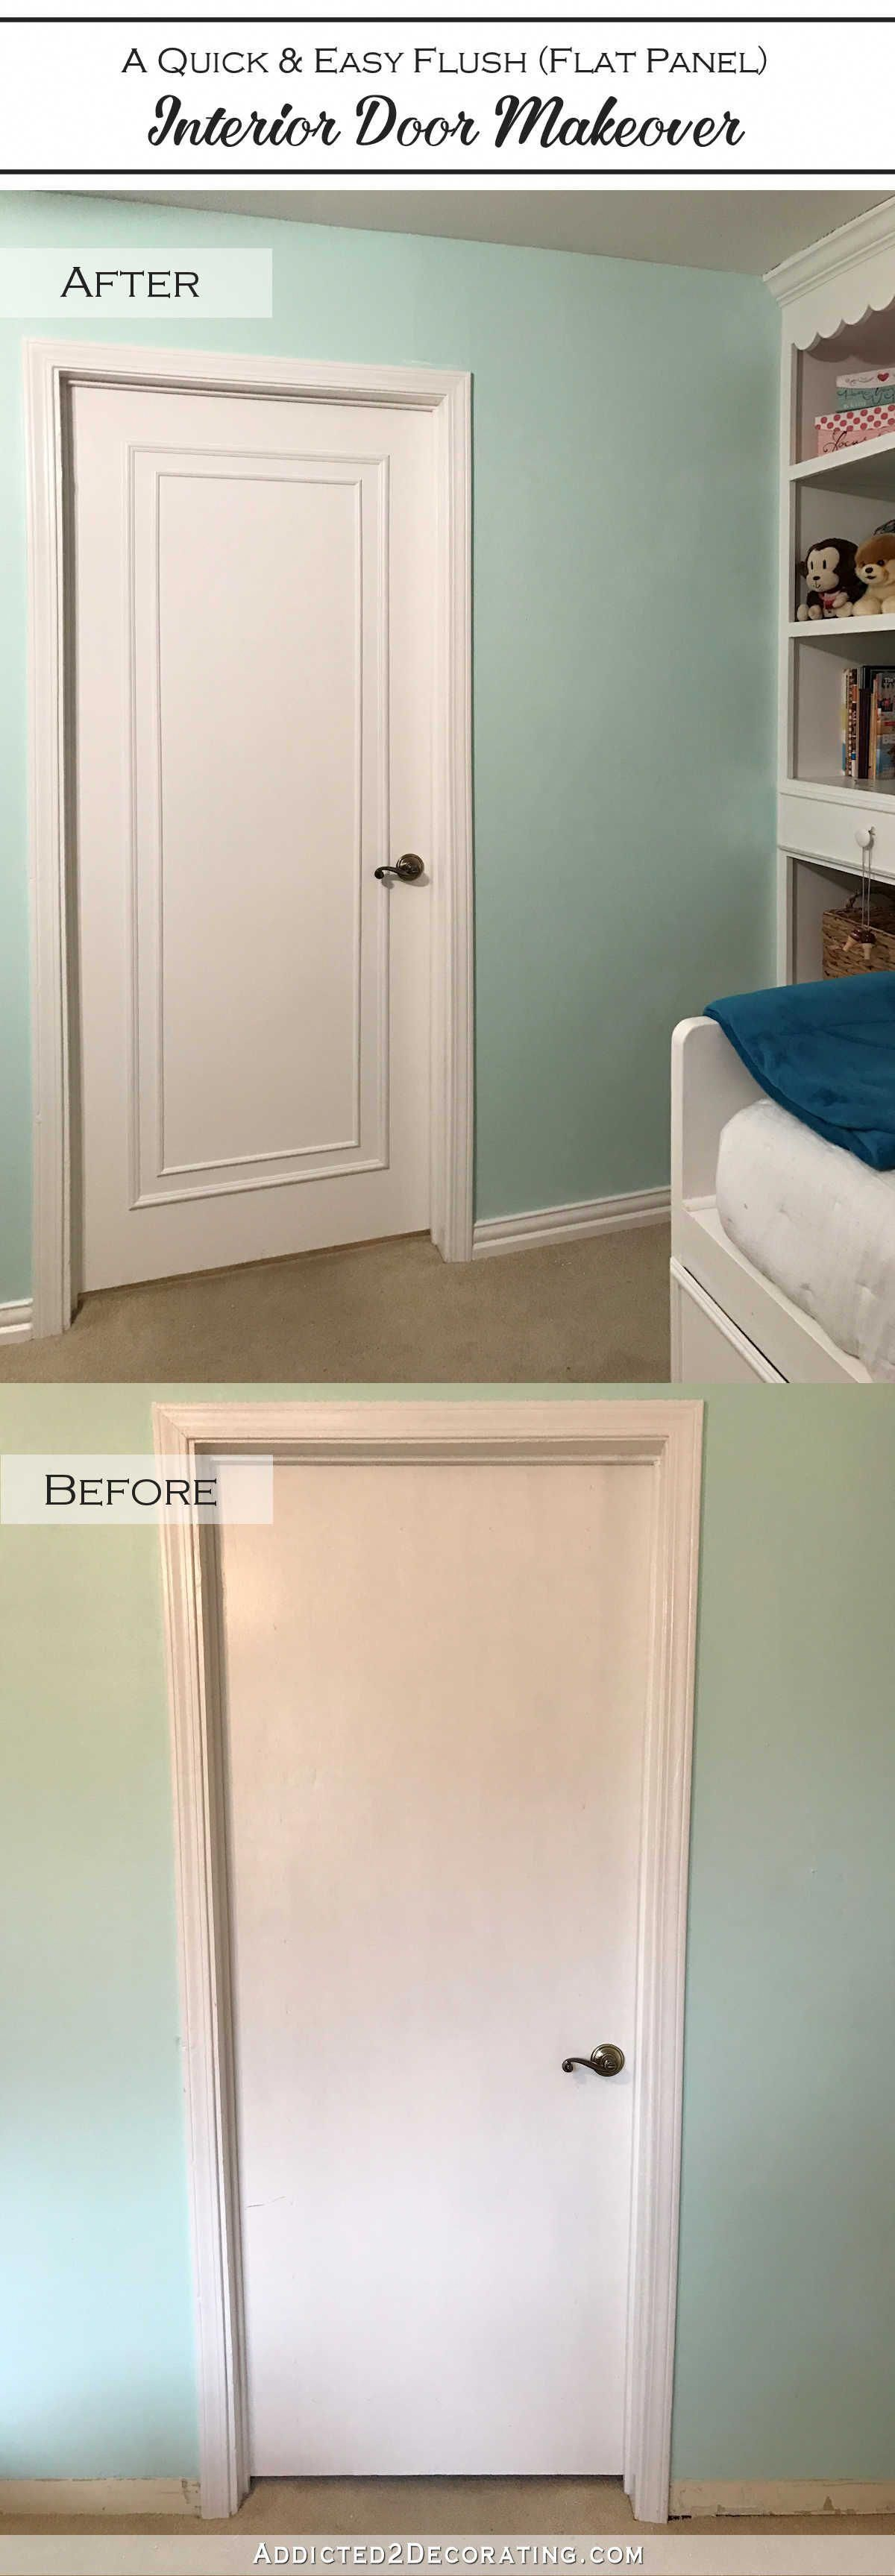 An easy  inexpensive way to update flush flat panel interior doors with moulding also rh pinterest